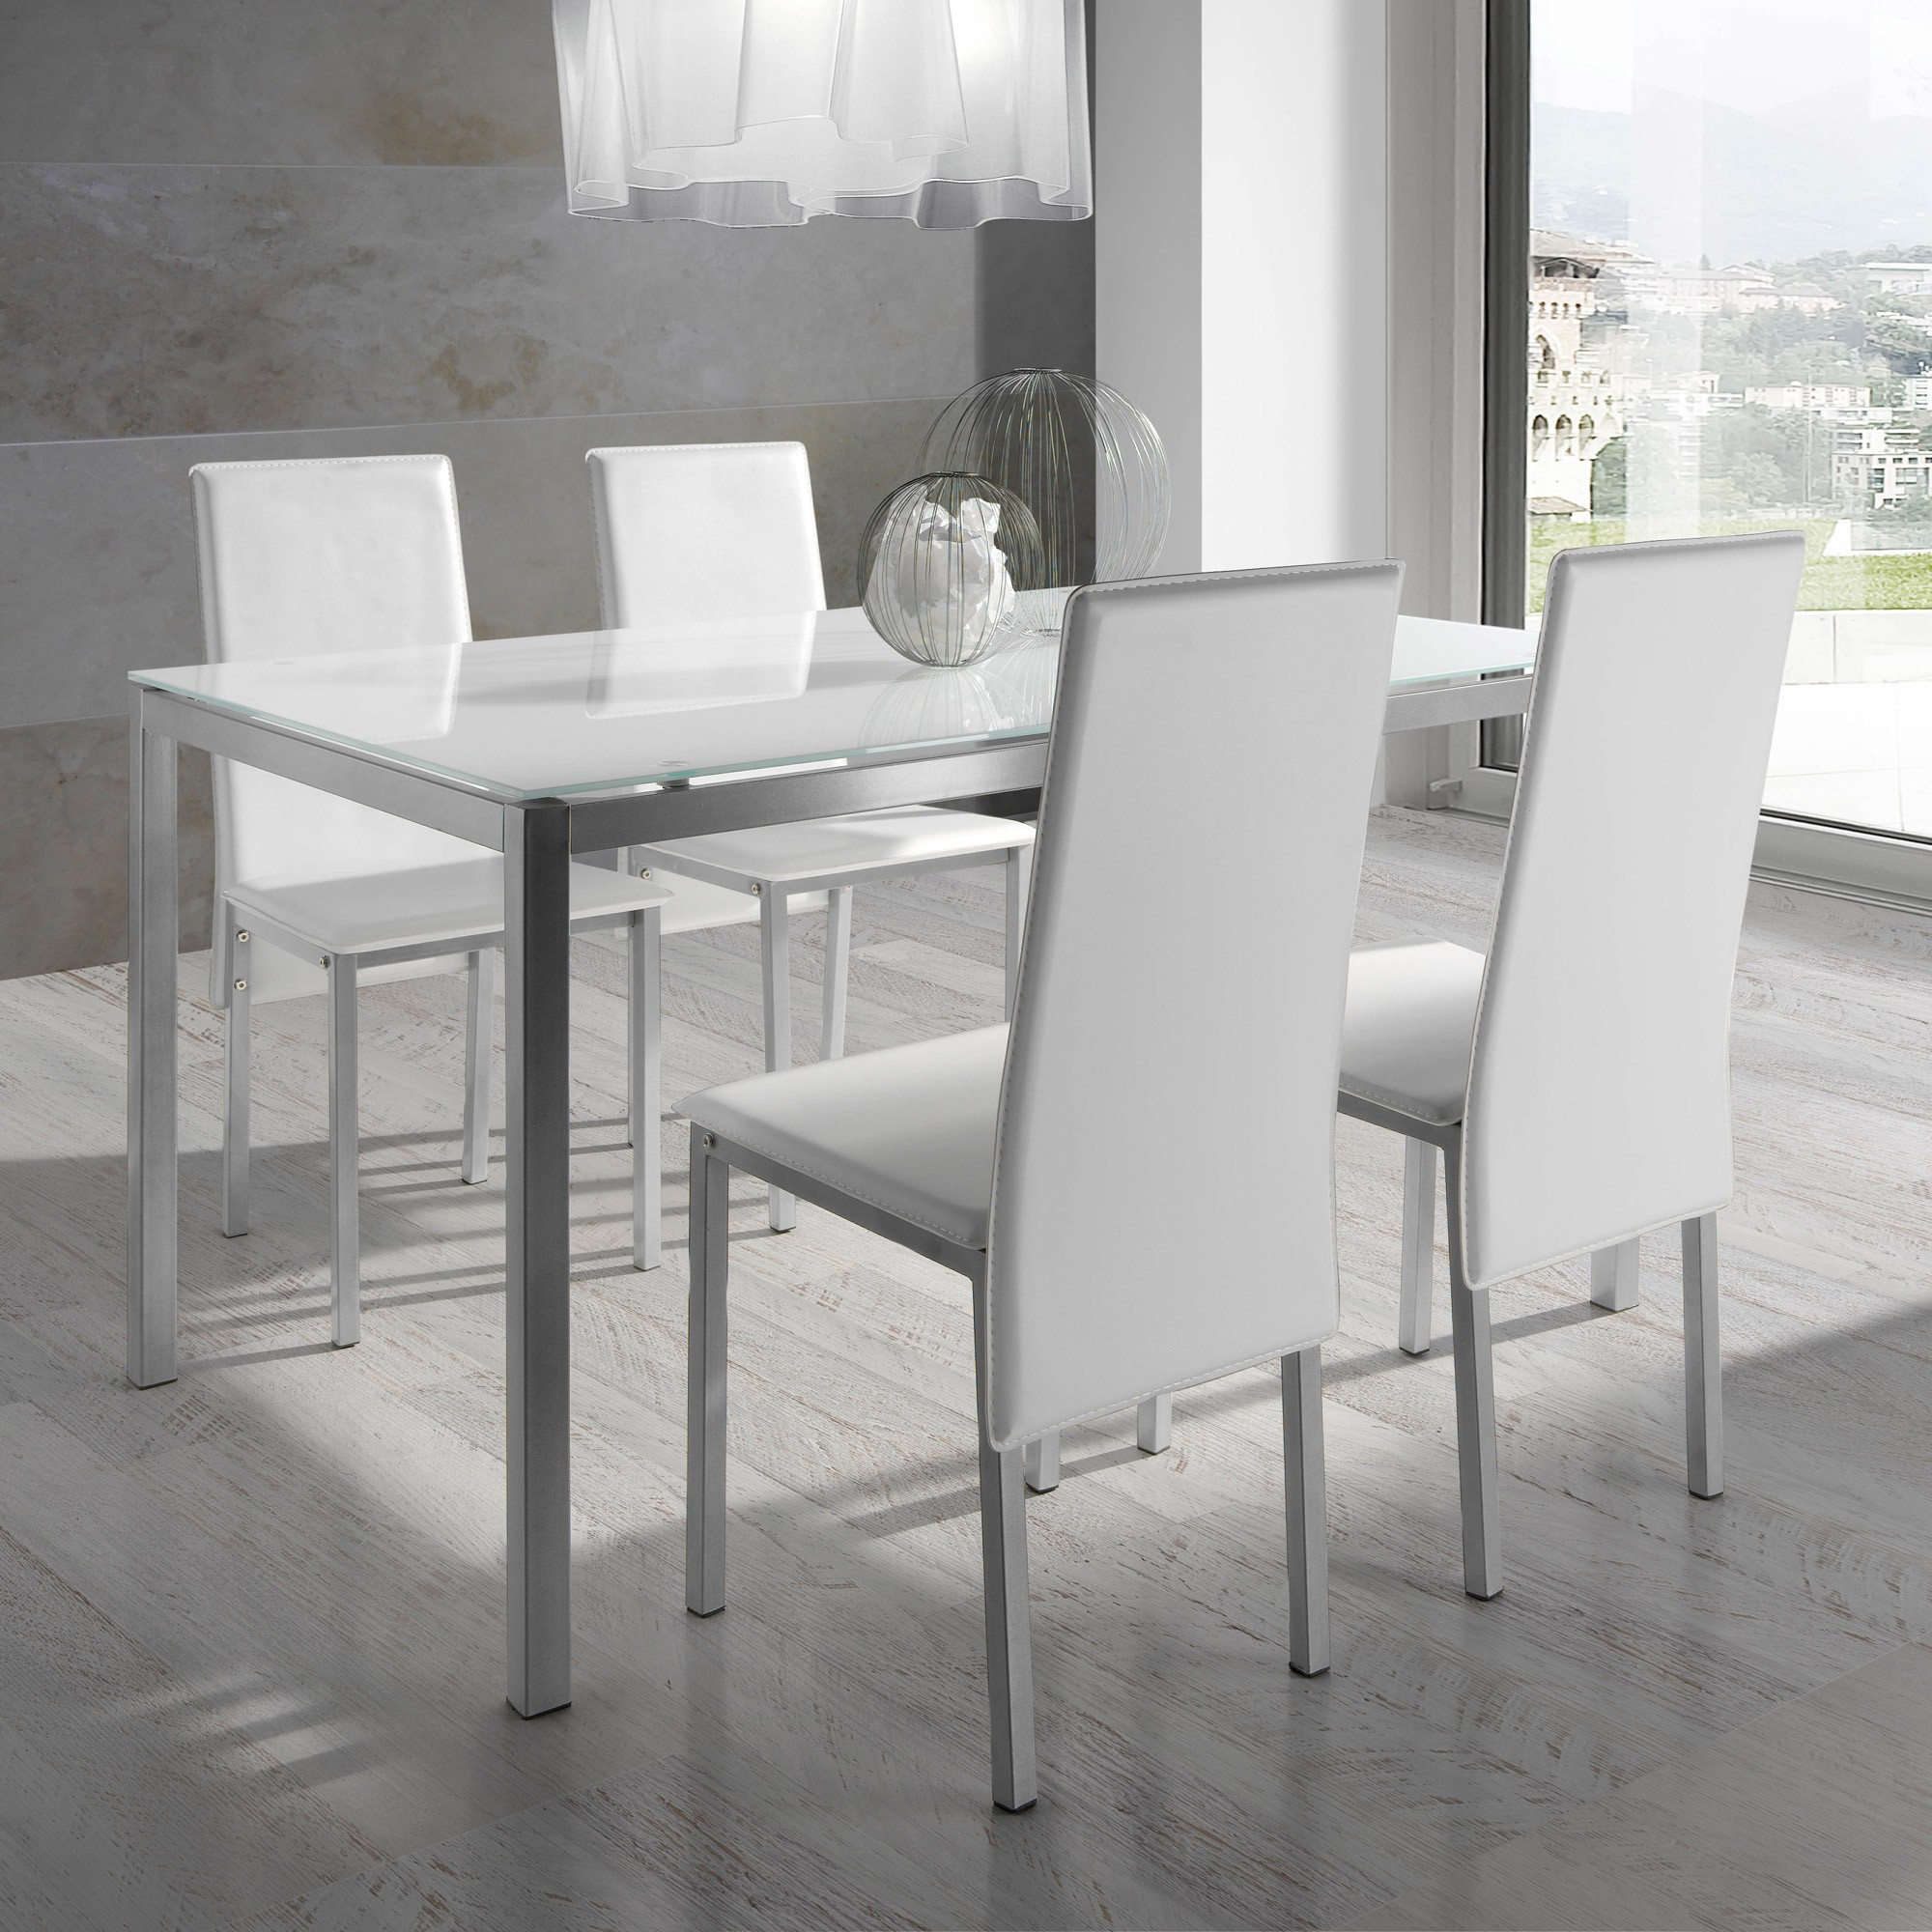 Ensemble table et chaise salle a manger but chaise for Ensemble salle a manger design